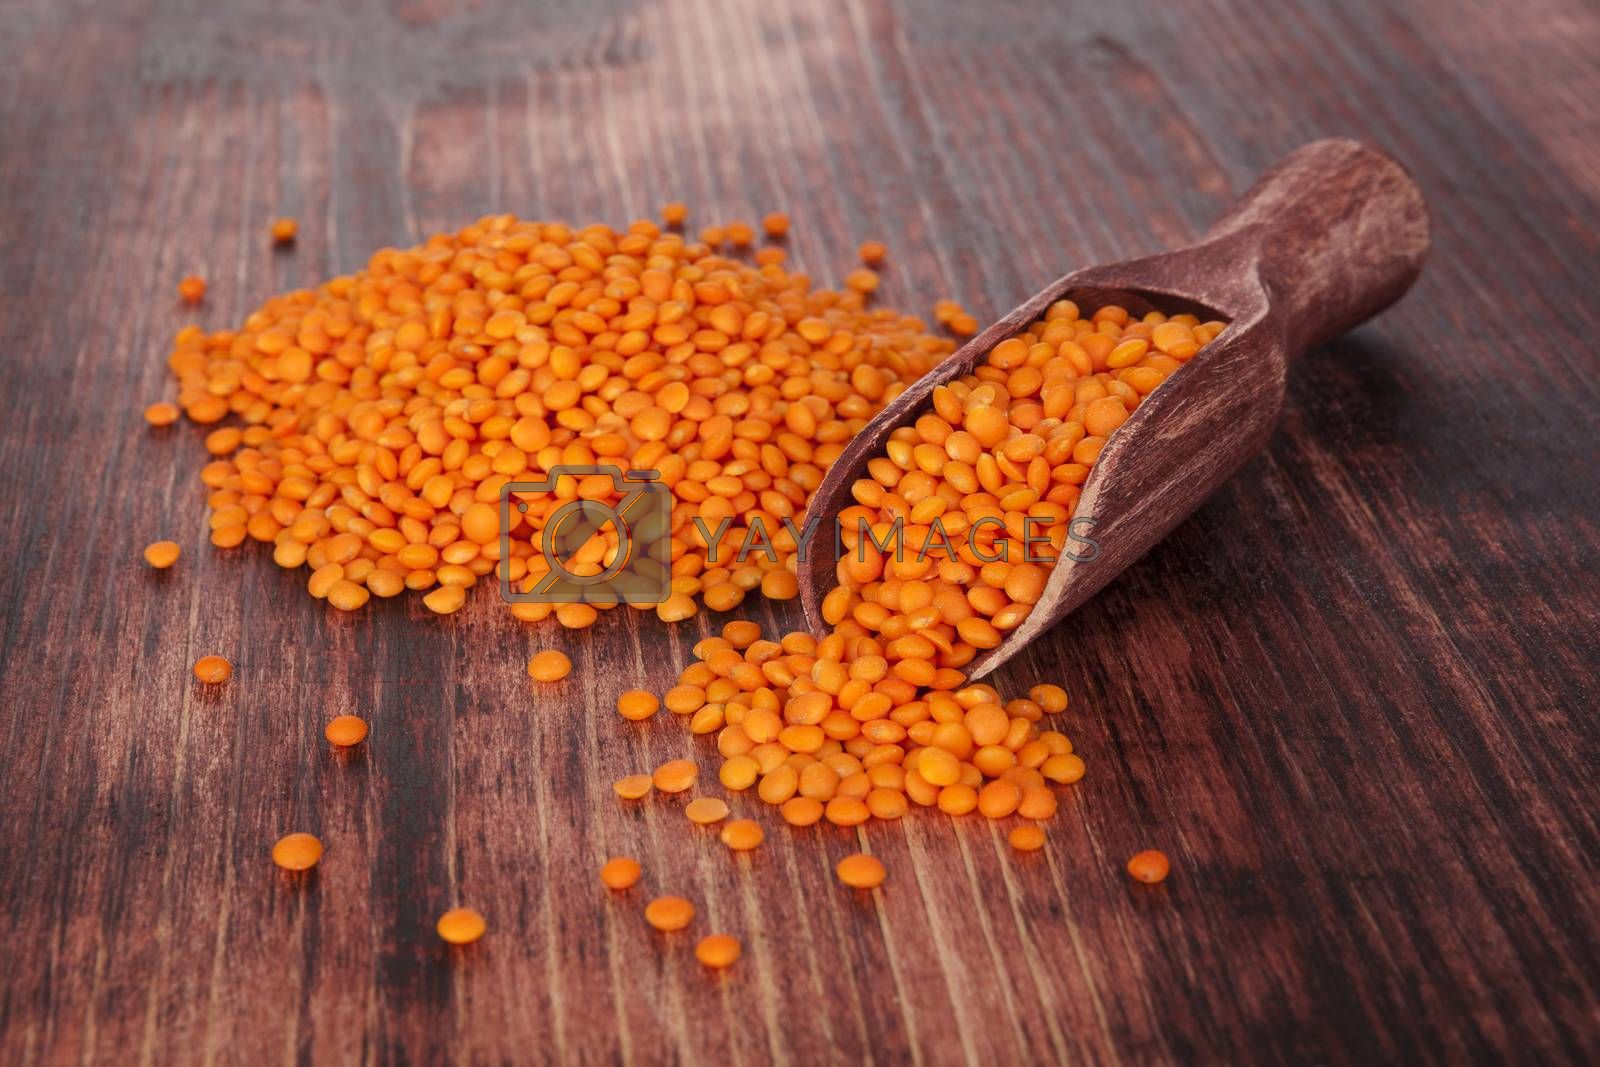 Red lentils on wooden spoon on dark wooden background. Healthy legume eating.